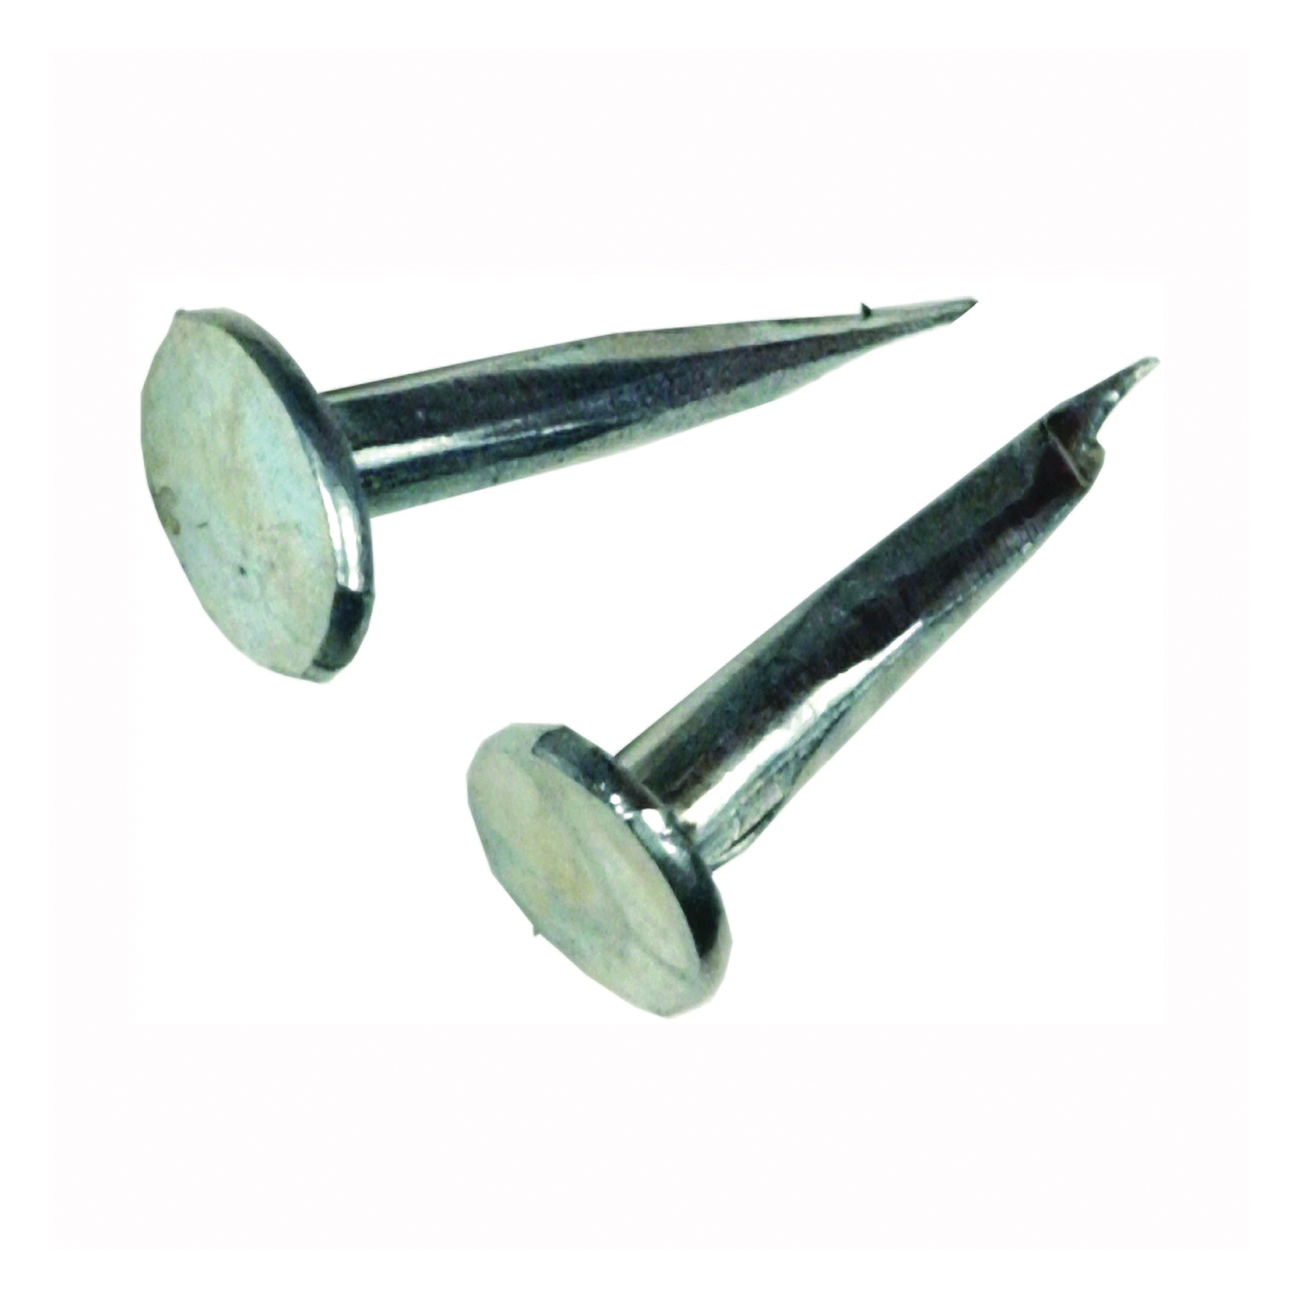 Picture of HILLMAN 122603 Cut Tack, 1/2 in L, Galvanized Steel, Sharp Point, Snap-Pak